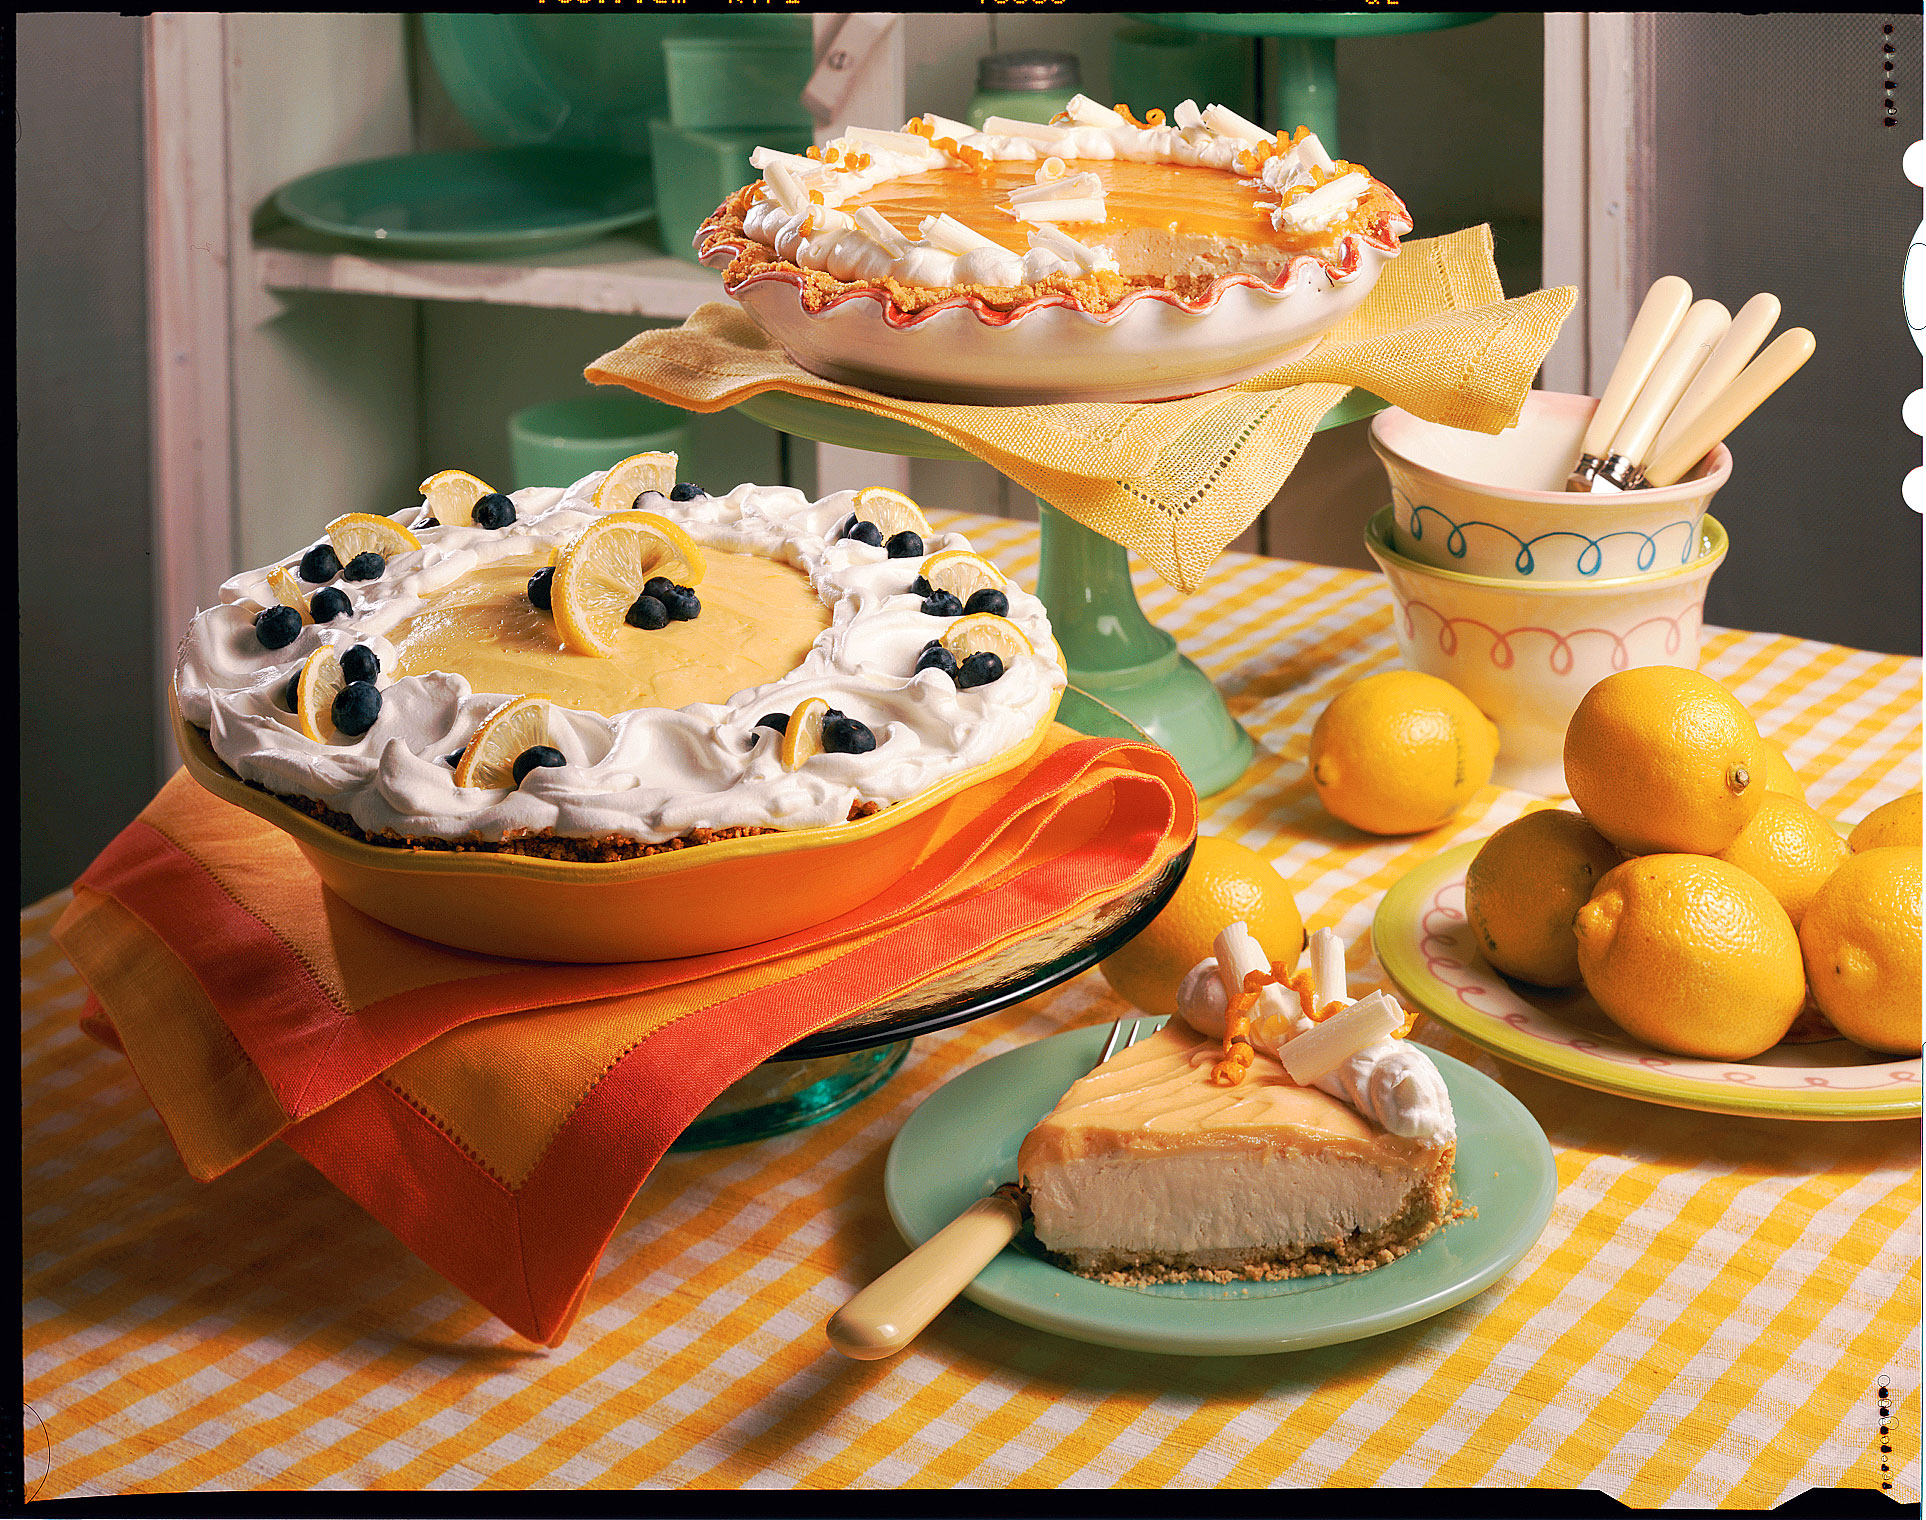 Fresh Blueberry Recipes: Lemon-Blueberry Cream Pie